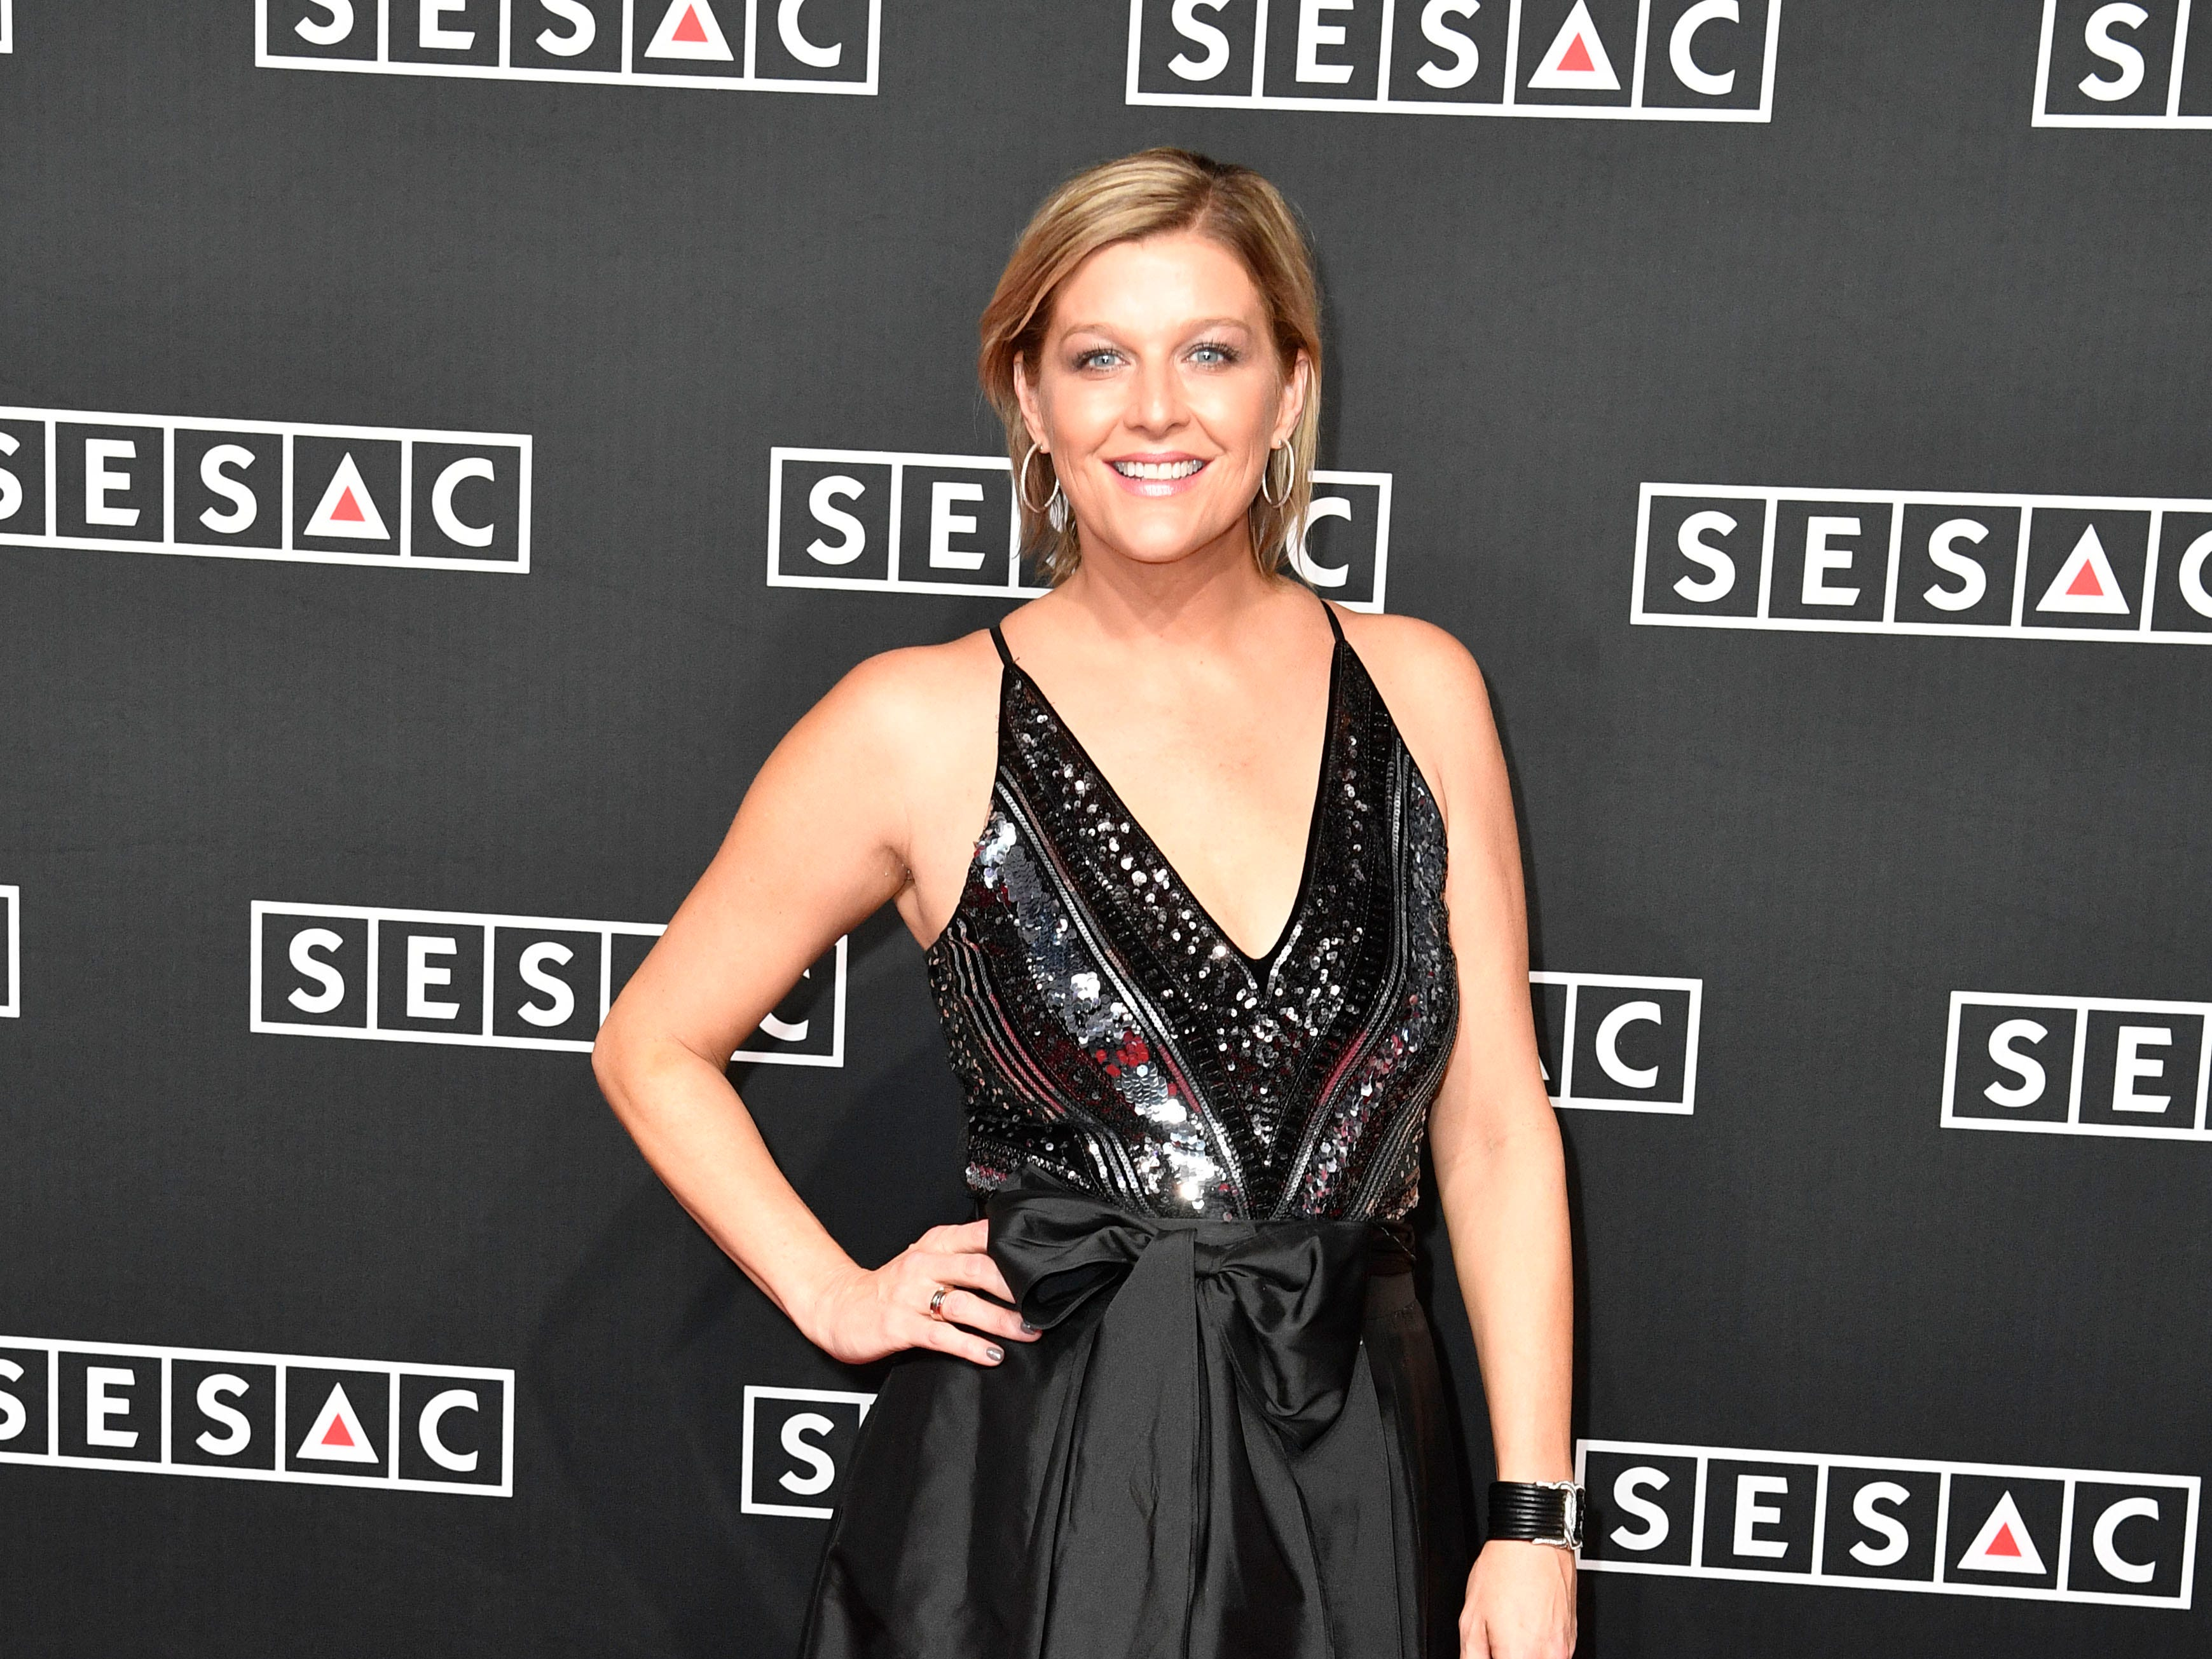 Shannan Hatch on the red carpet at the SESAC Nashville Music Awards at the Country Music Hall of Fame and Museum Sunday Nov. 11, 2018, in Nashville, Tenn.